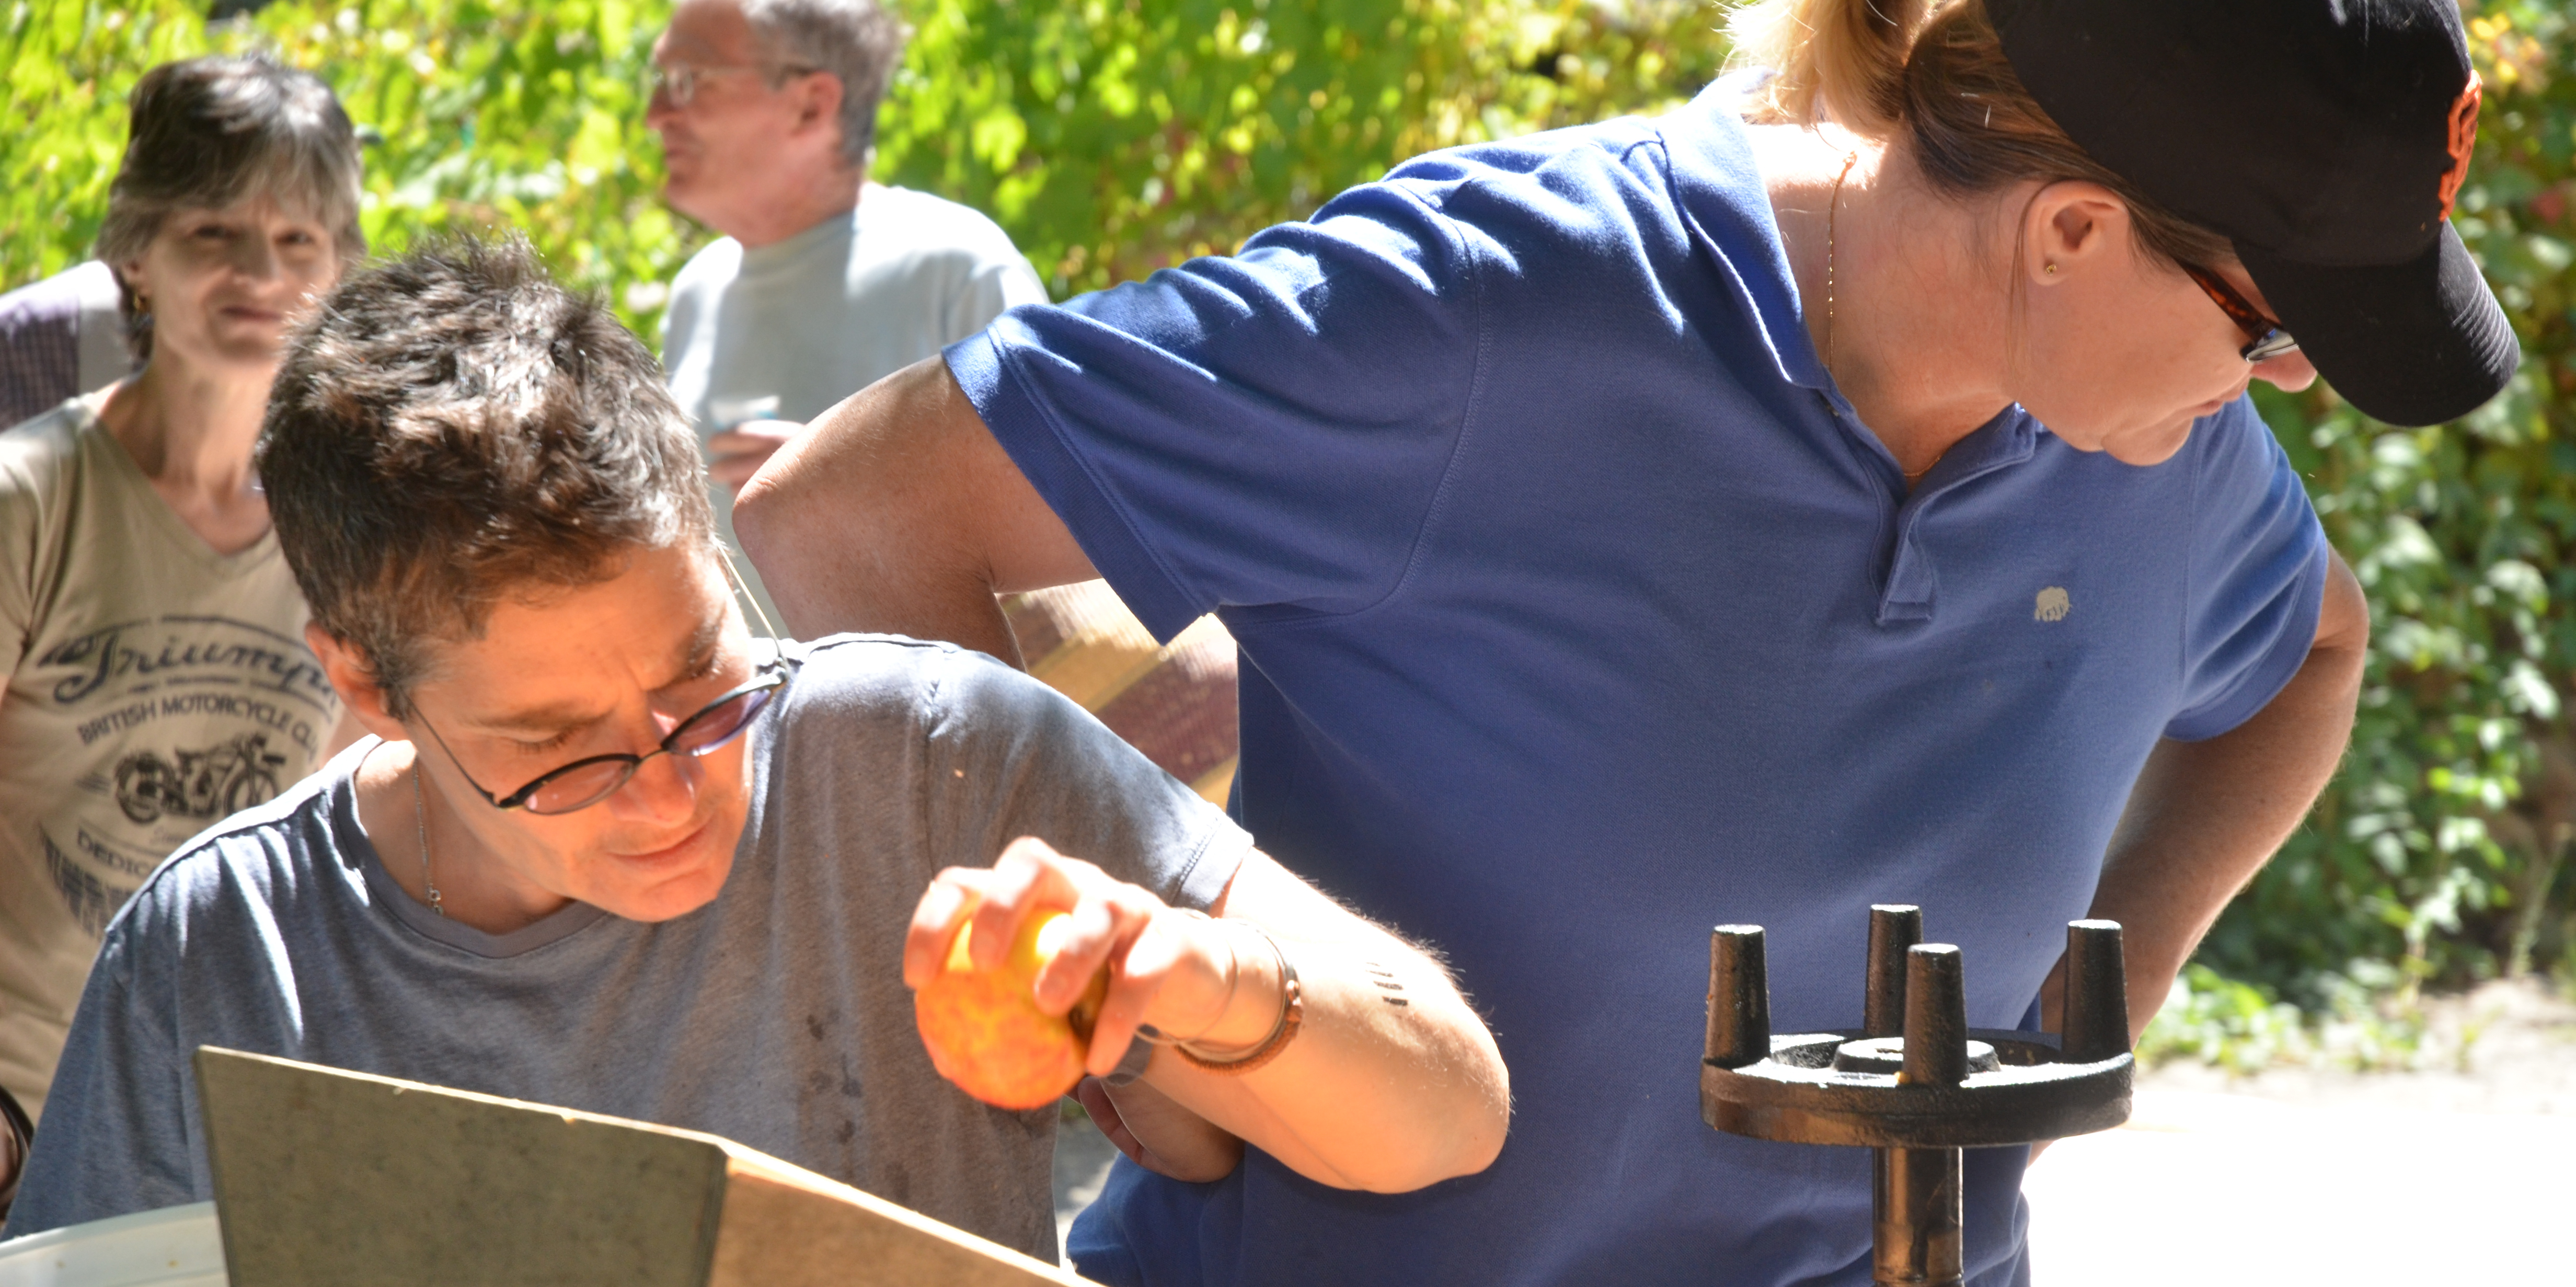 Working together at the Free Community Apple Press